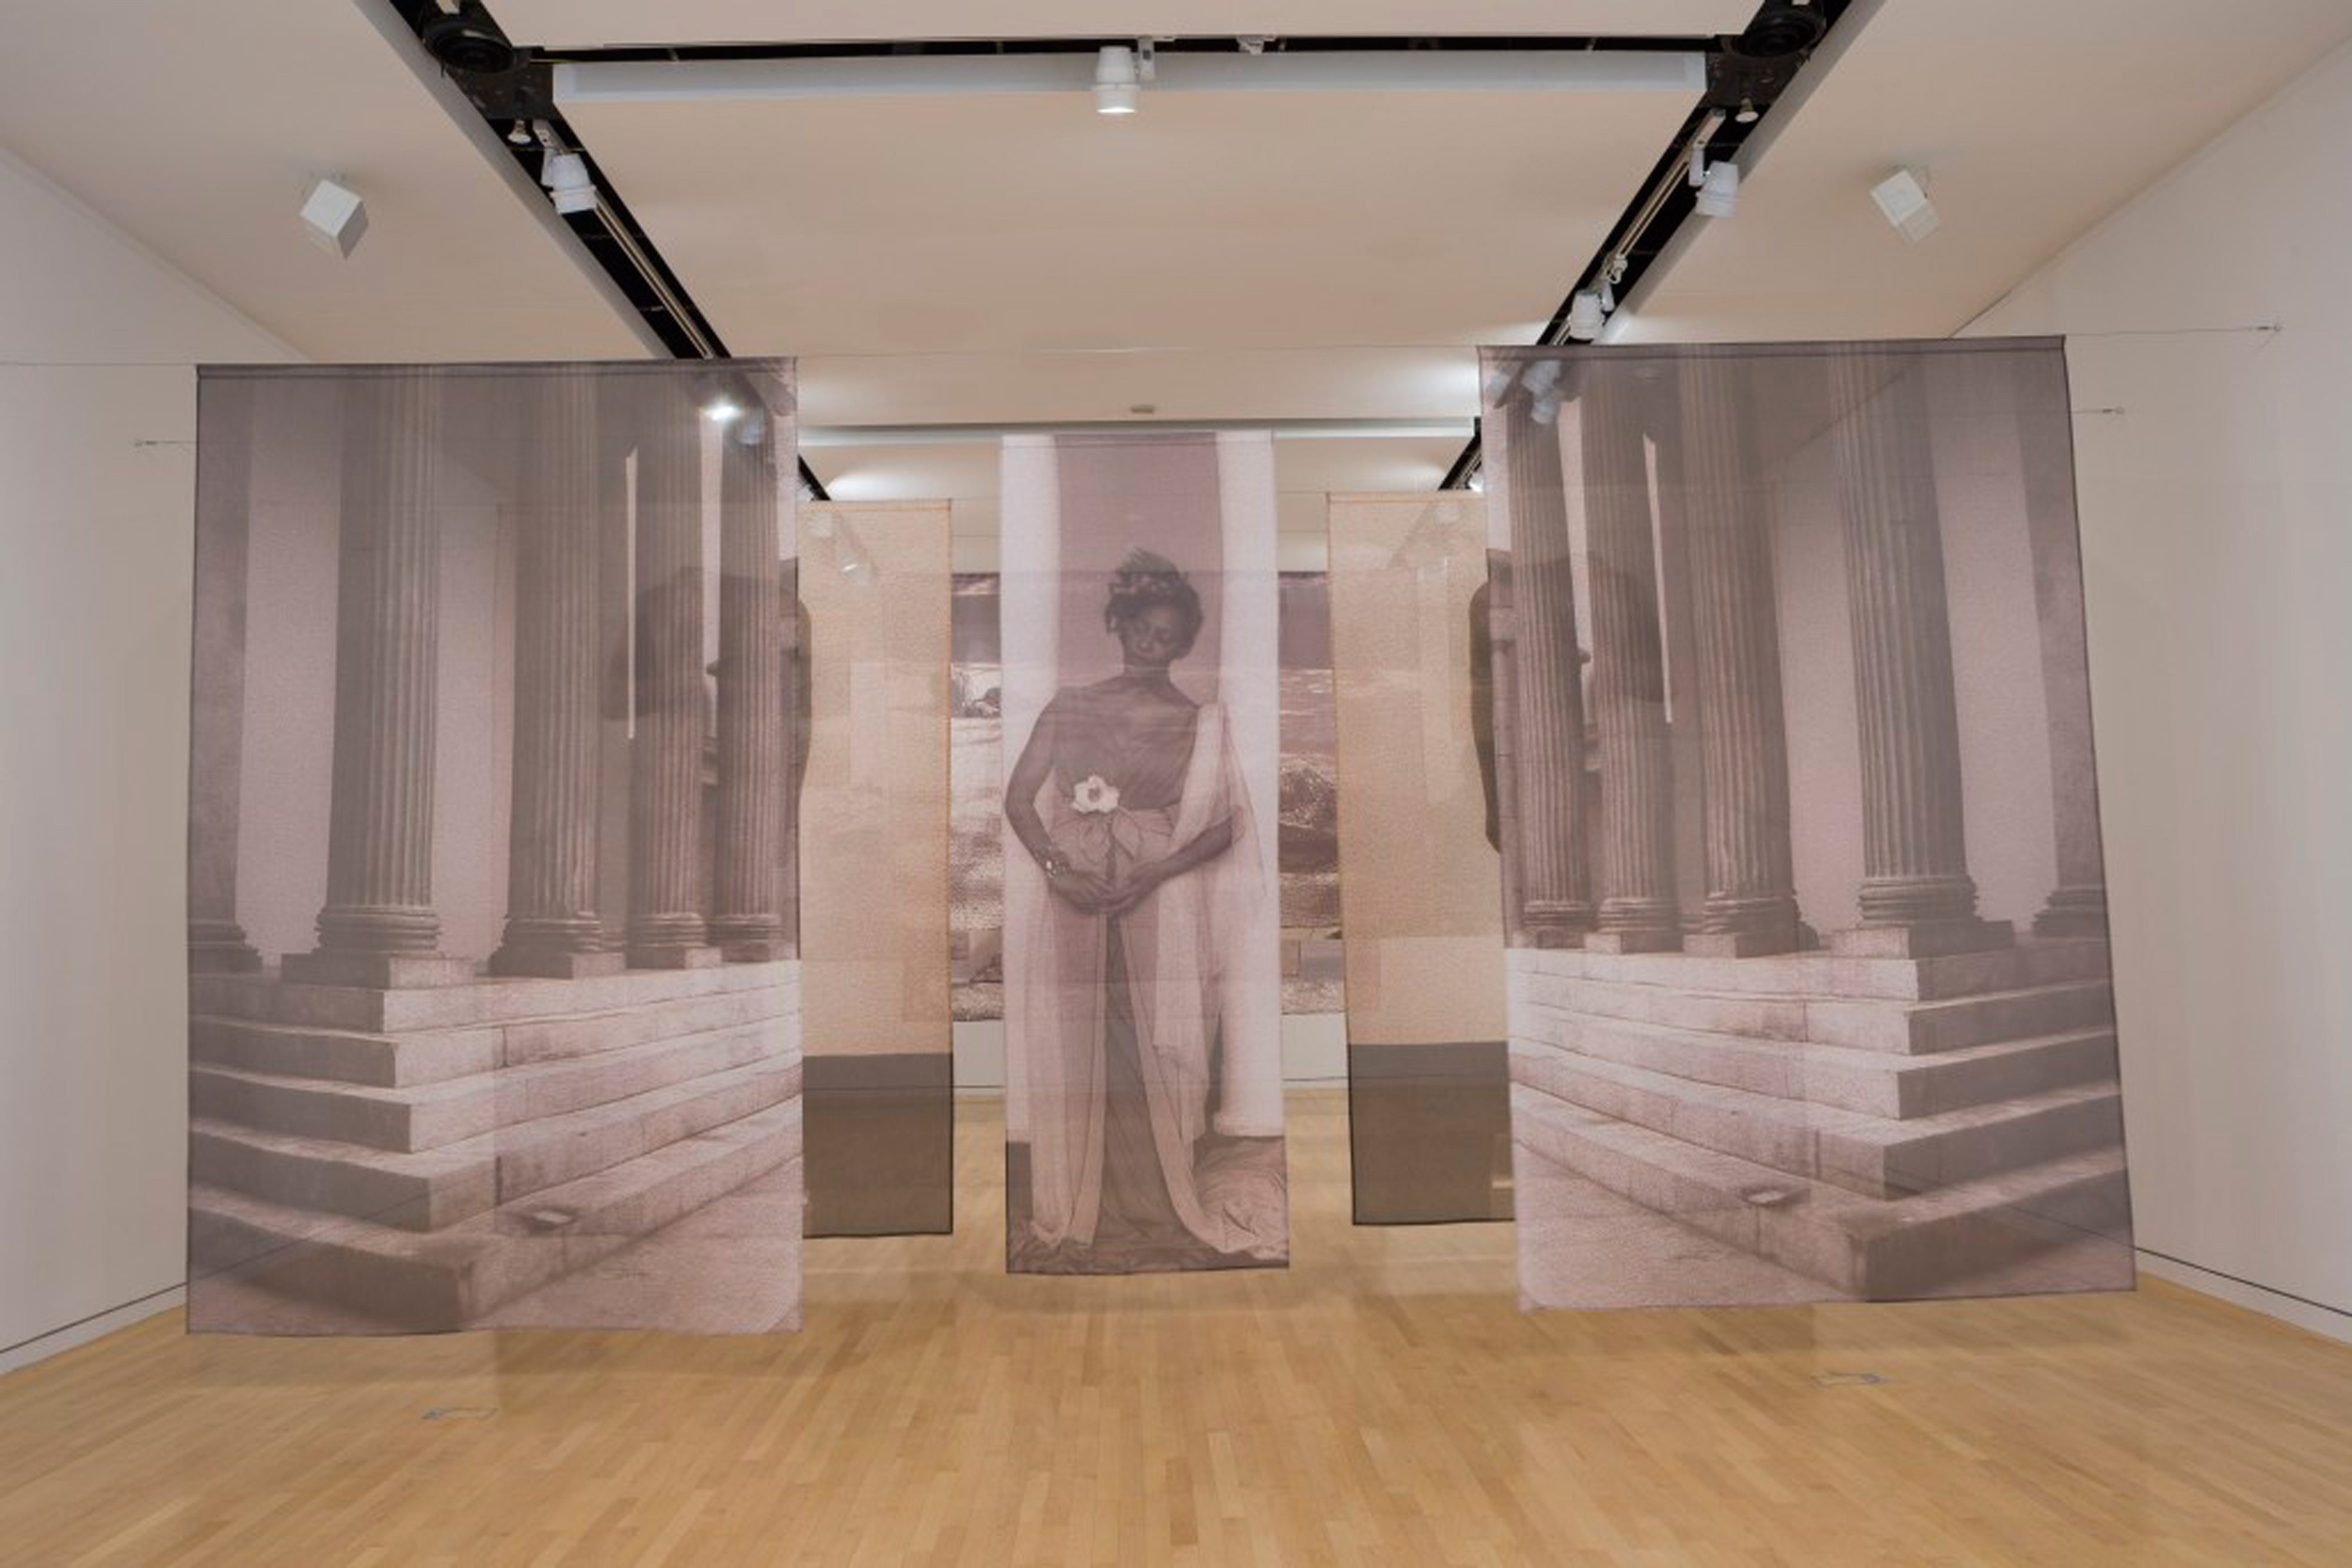 Galerie Barbara Thumm \ Carrie Mae Weems – Ritual and Revolution